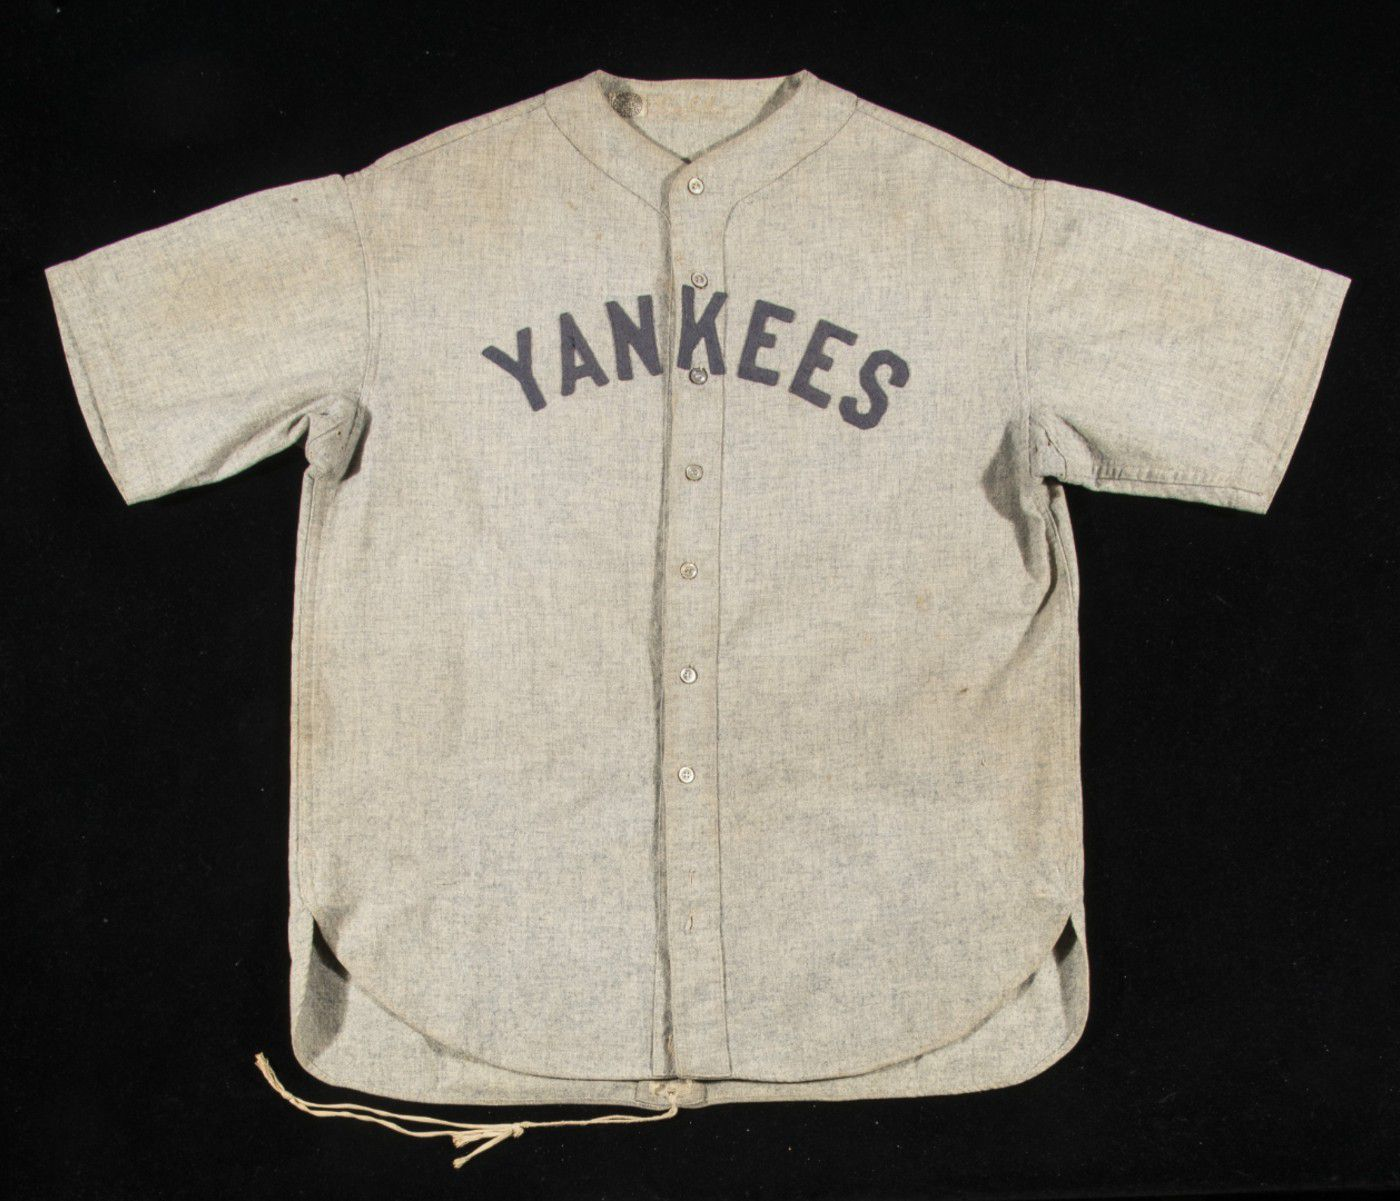 the latest 1cae9 f4bc4 Babe Ruth jersey breaks record at auction - US news